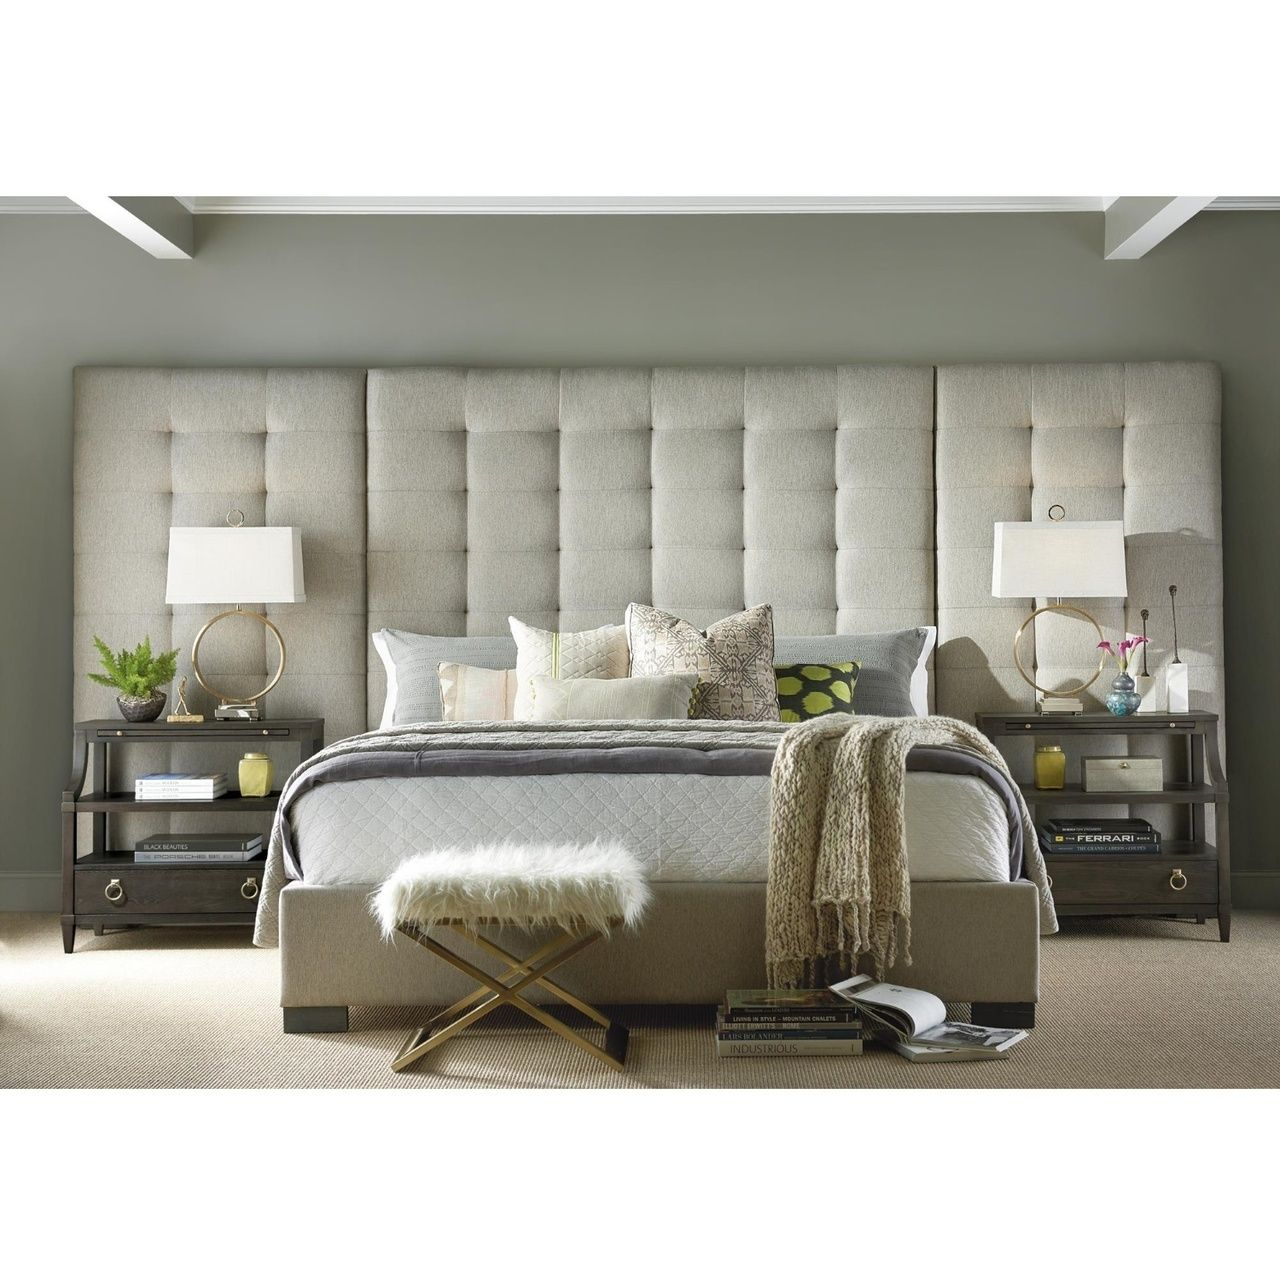 Camille Box Tufted Extended Headboard Grey Upholstered King Bed King Upholstered Bed Furniture Trends Universal Furniture